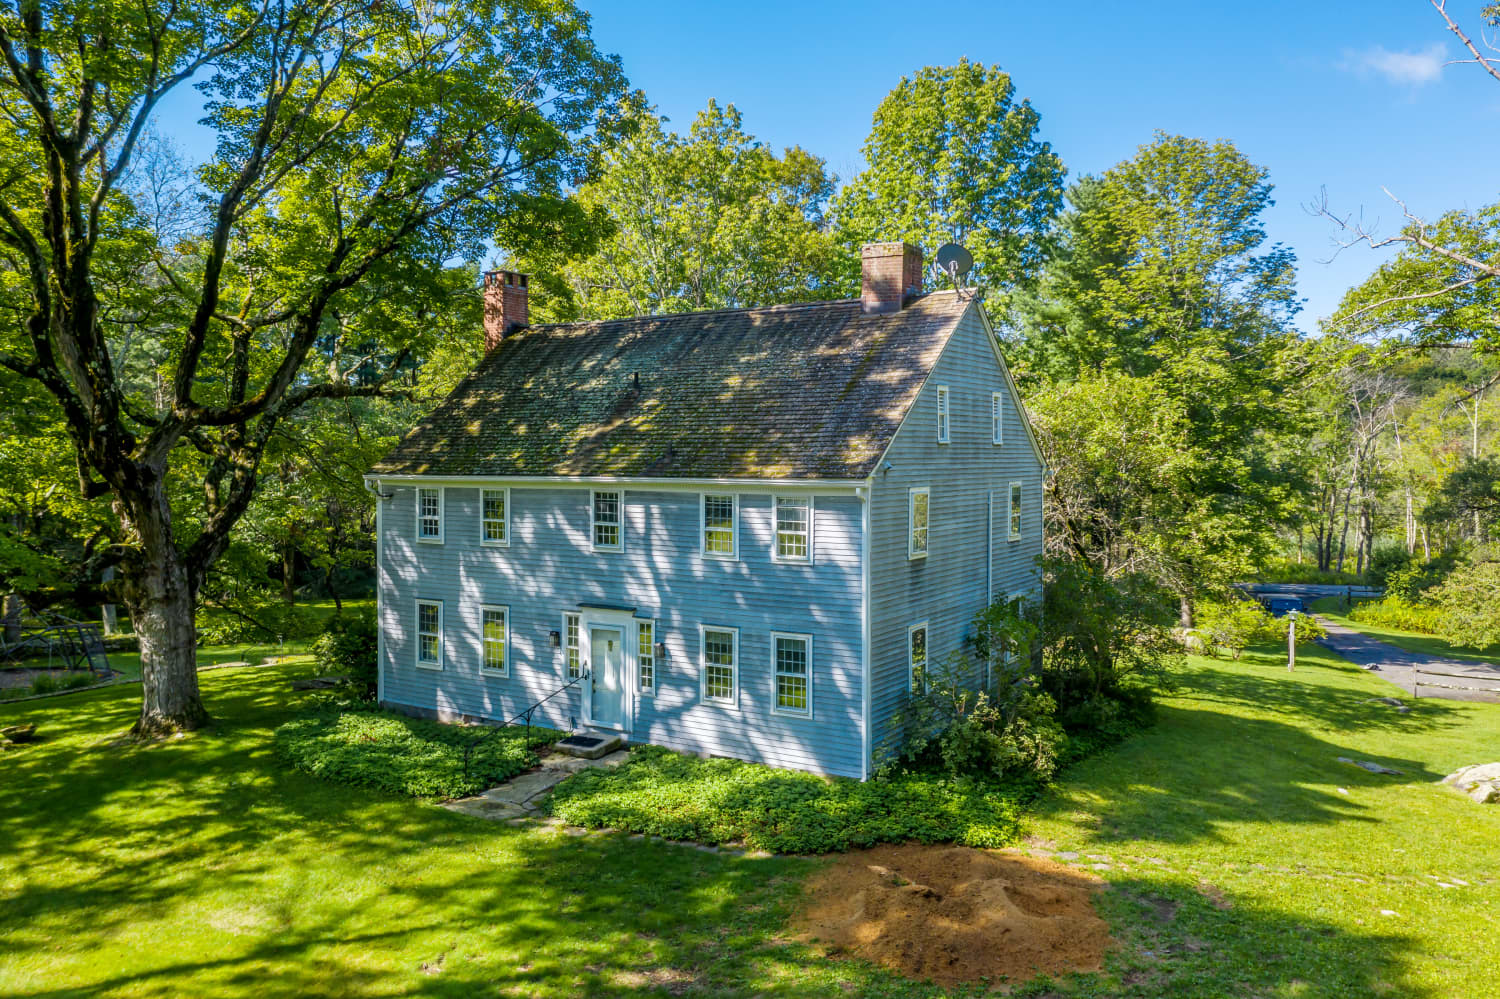 """The CT Home Where Philip Roth Wrote """"American Pastoral"""" Is Listed for $3M"""